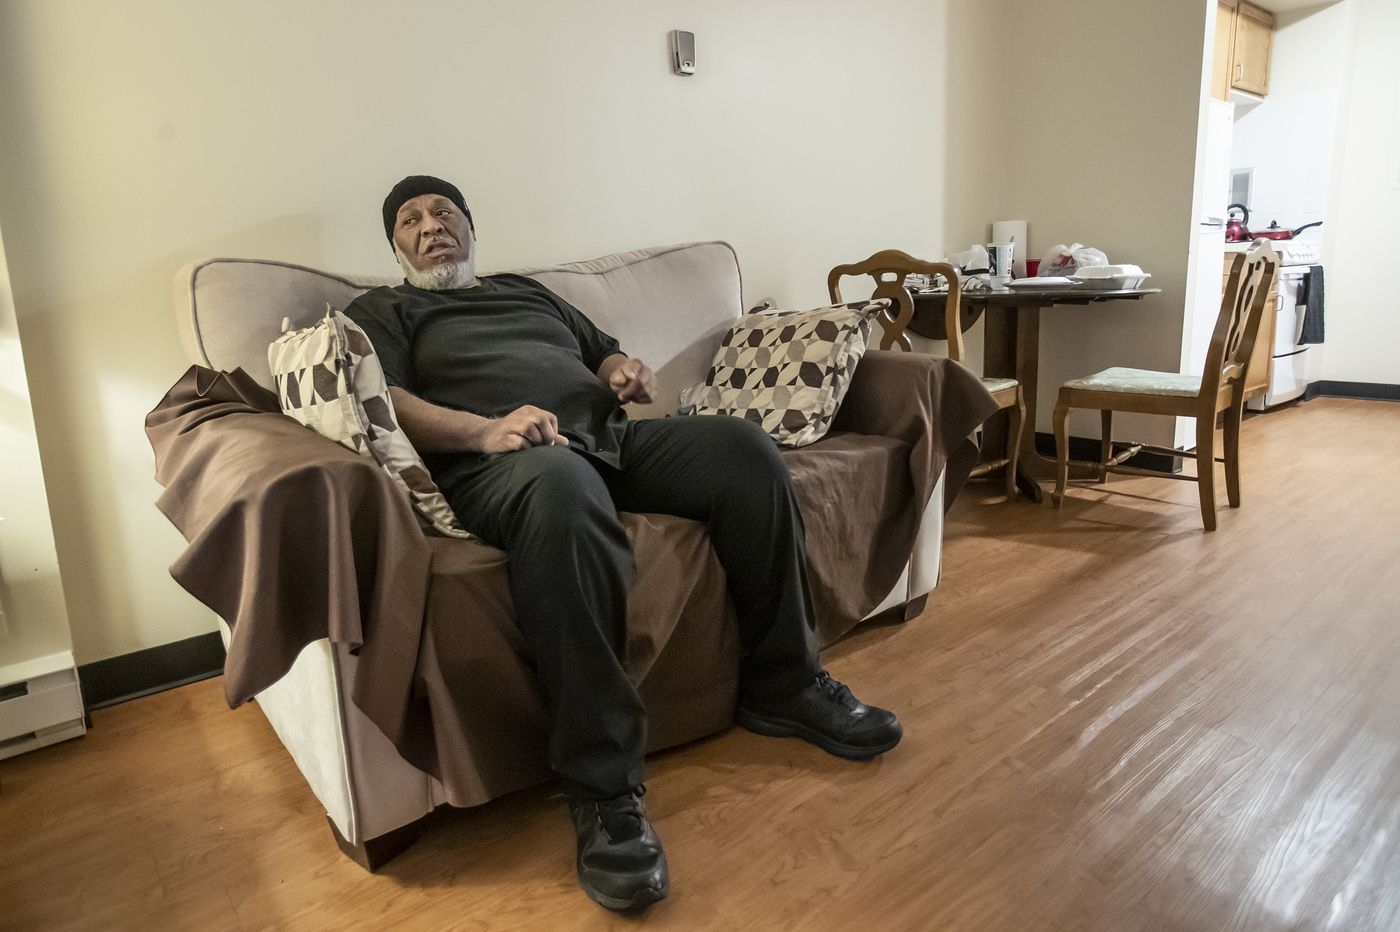 UnitedHealthcare tackles homelessness as a root cause of poor health, and Philly is a test bed